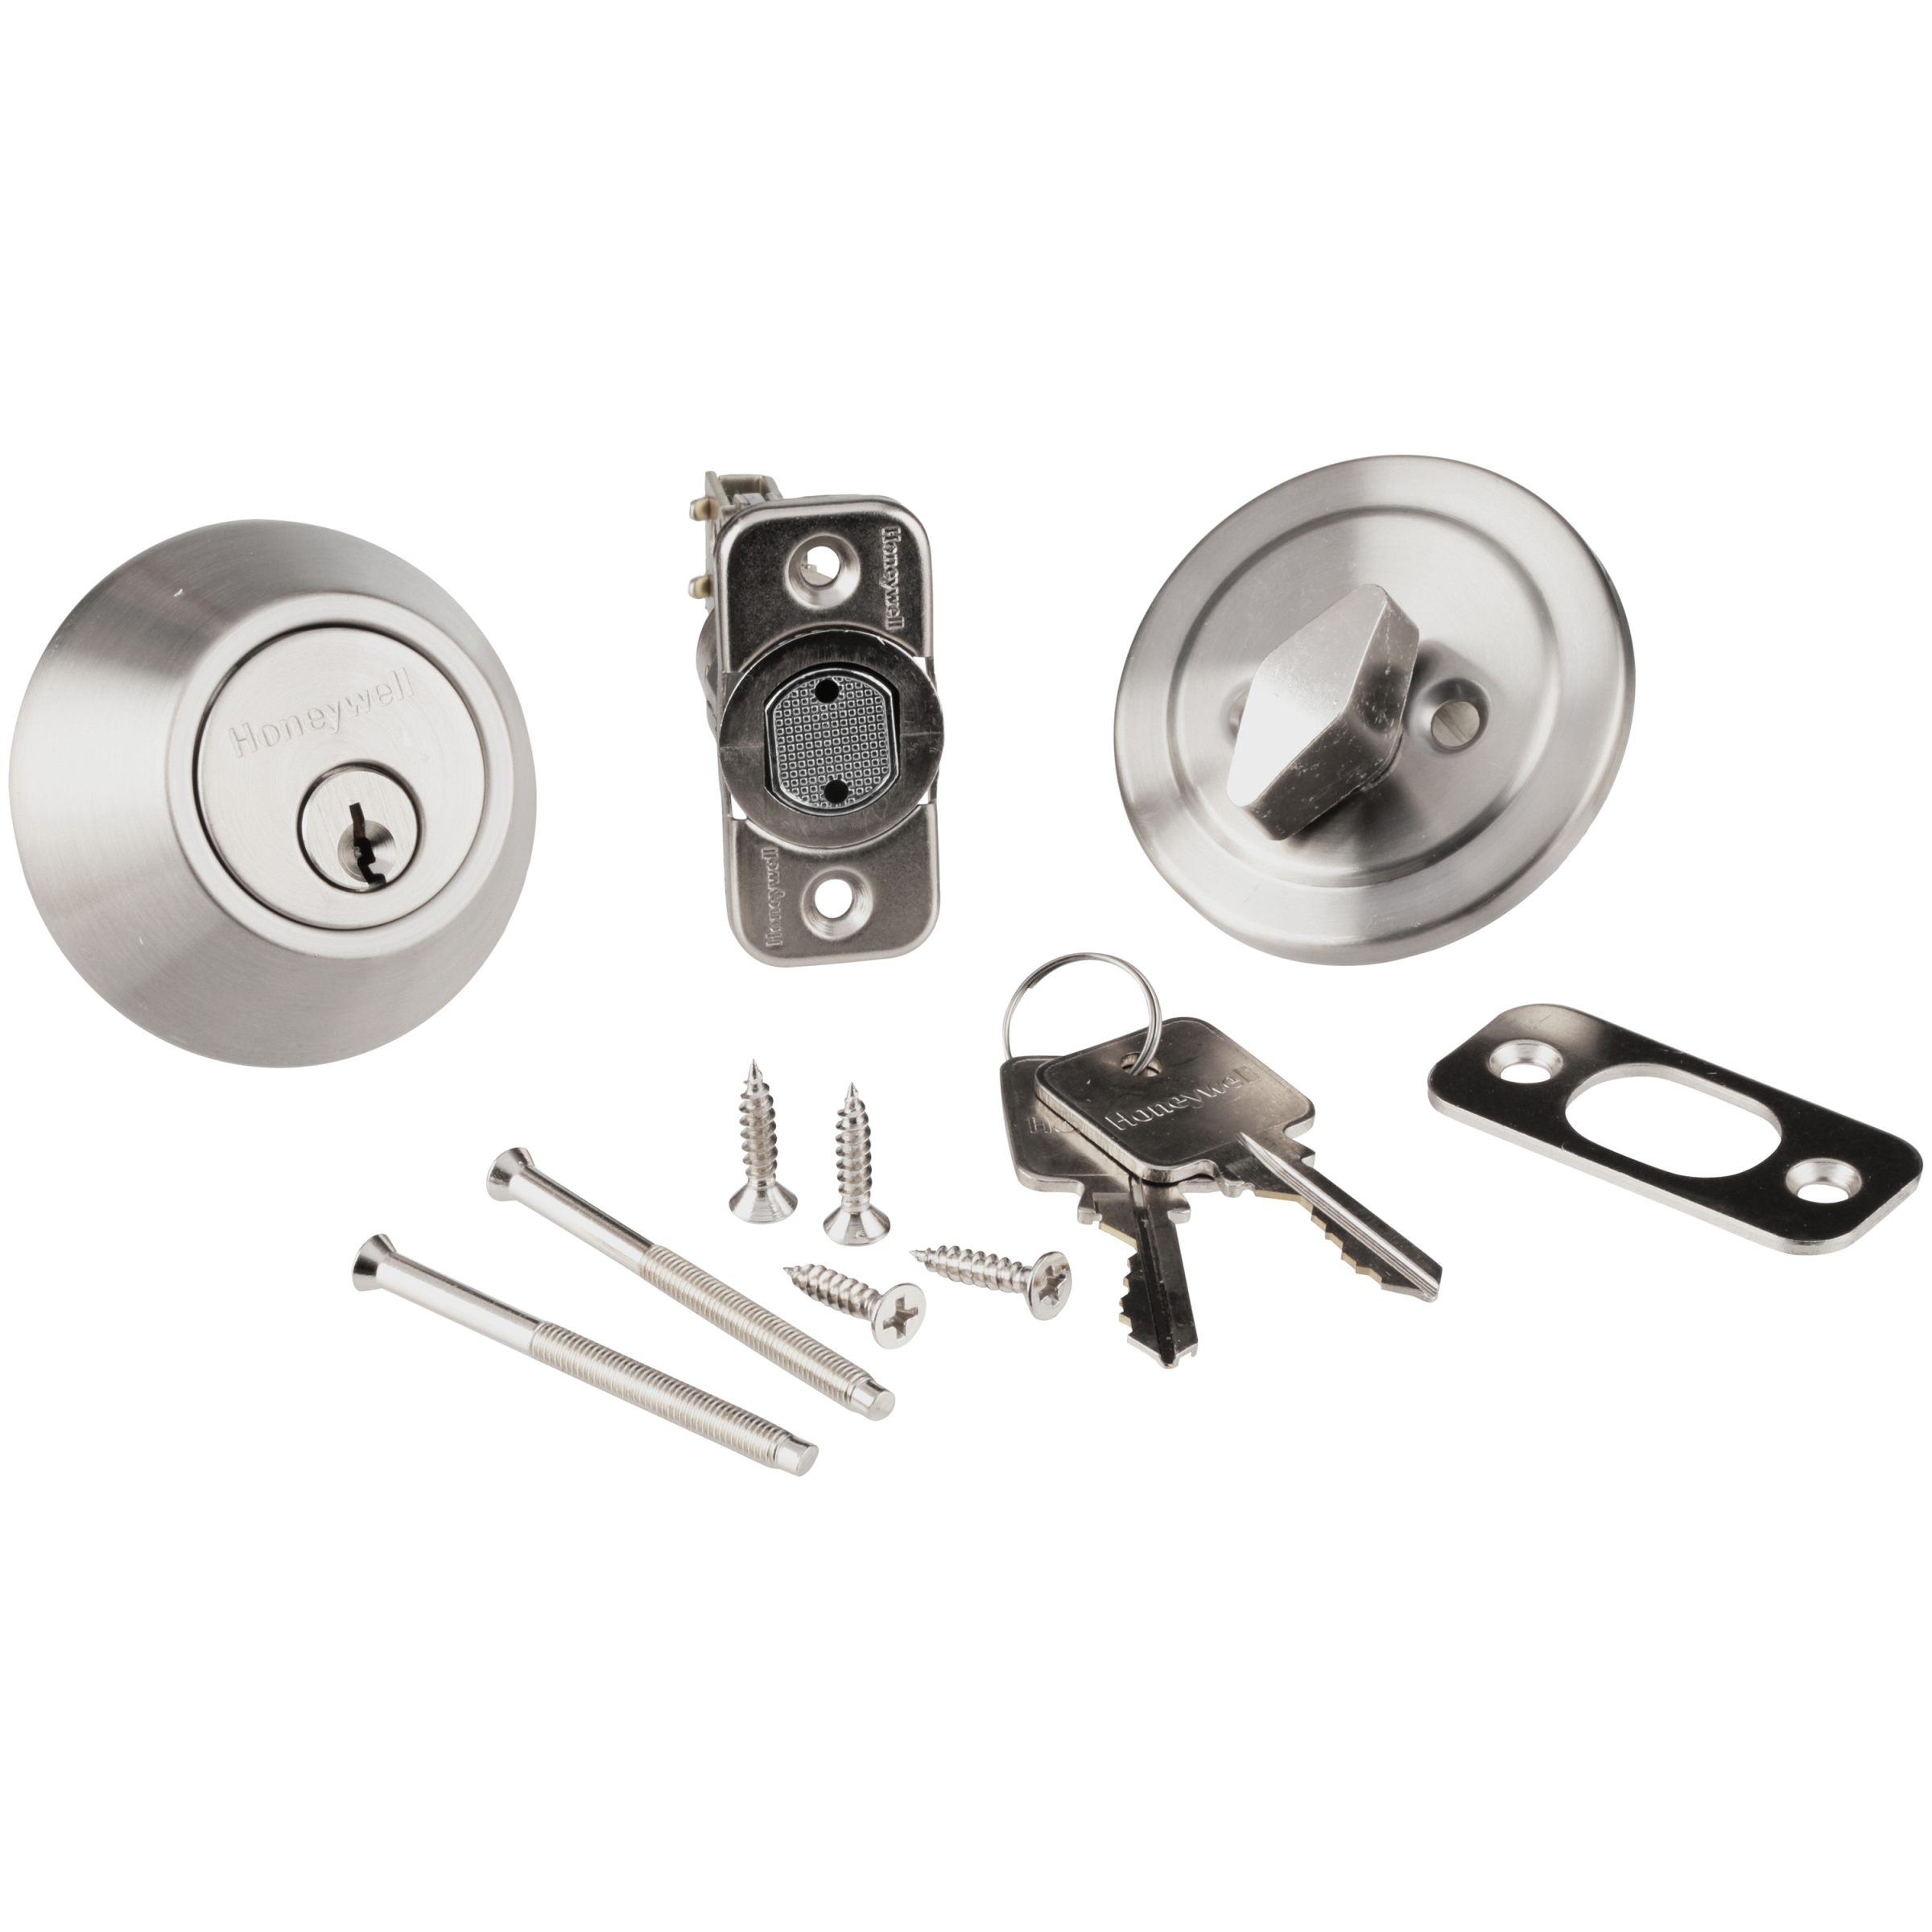 Honeywell Deadbolt 12 pc. Carded Pack